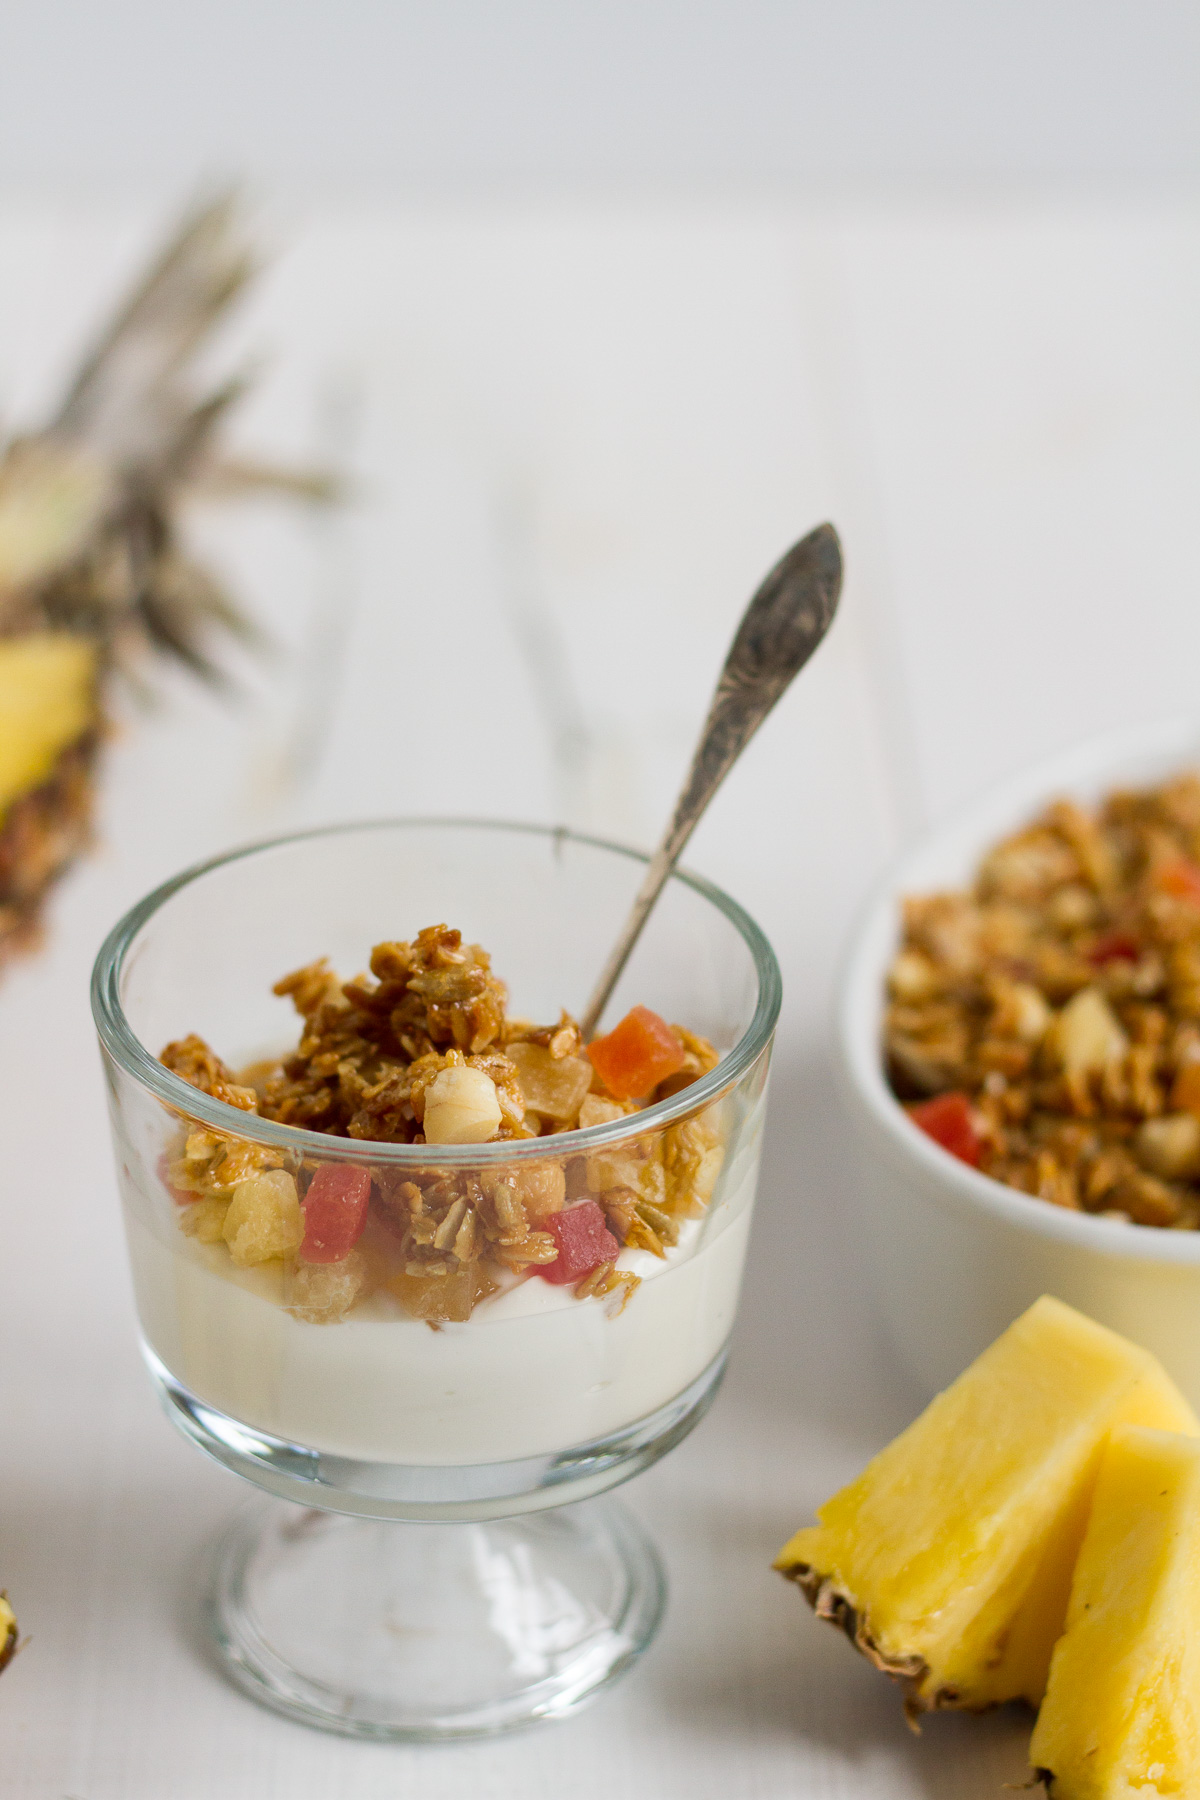 Crunchy homemade tropical granola with oats, sunflower seeds, macadamia nuts, coconut chips, dried tropical fruits likes pineapple, mango, and papaya, lightly sweetened with honey and brown sugar.